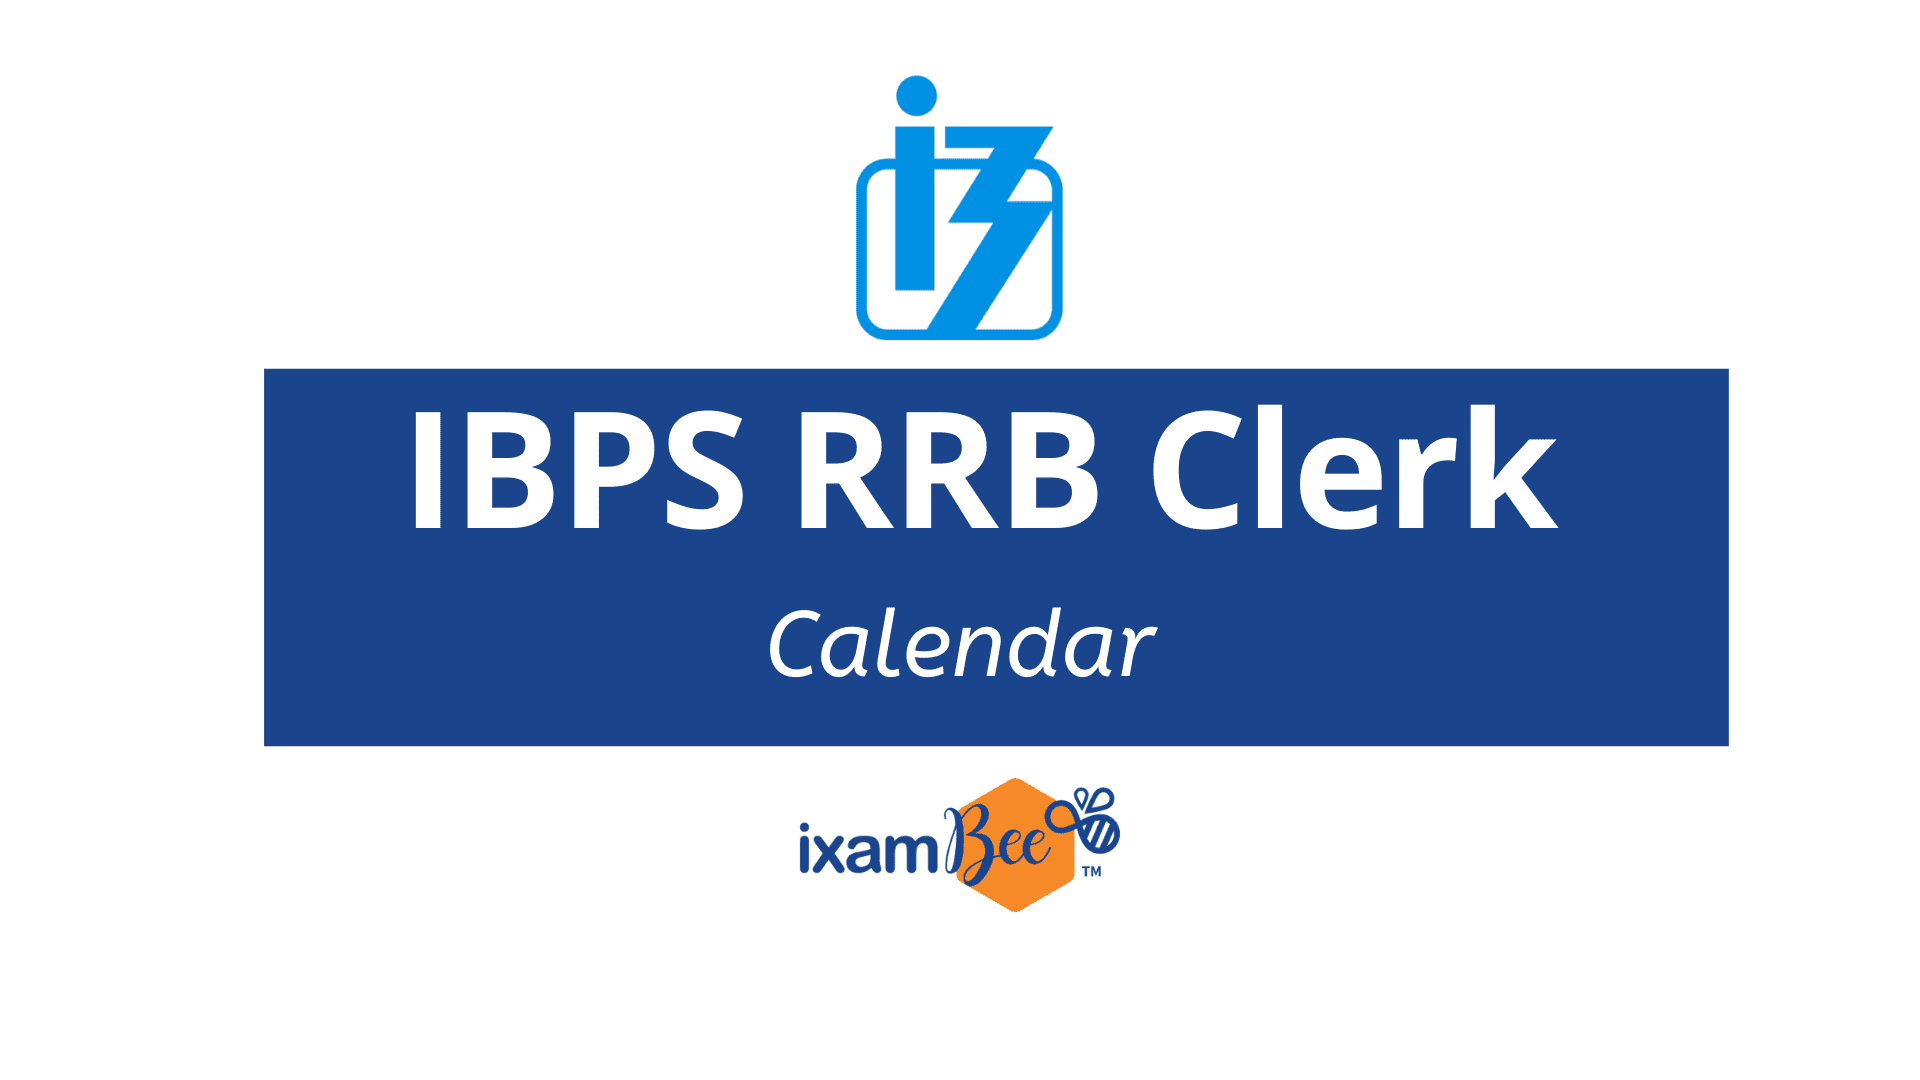 IBPS RRB Group 'B' Office Assistant Calendar